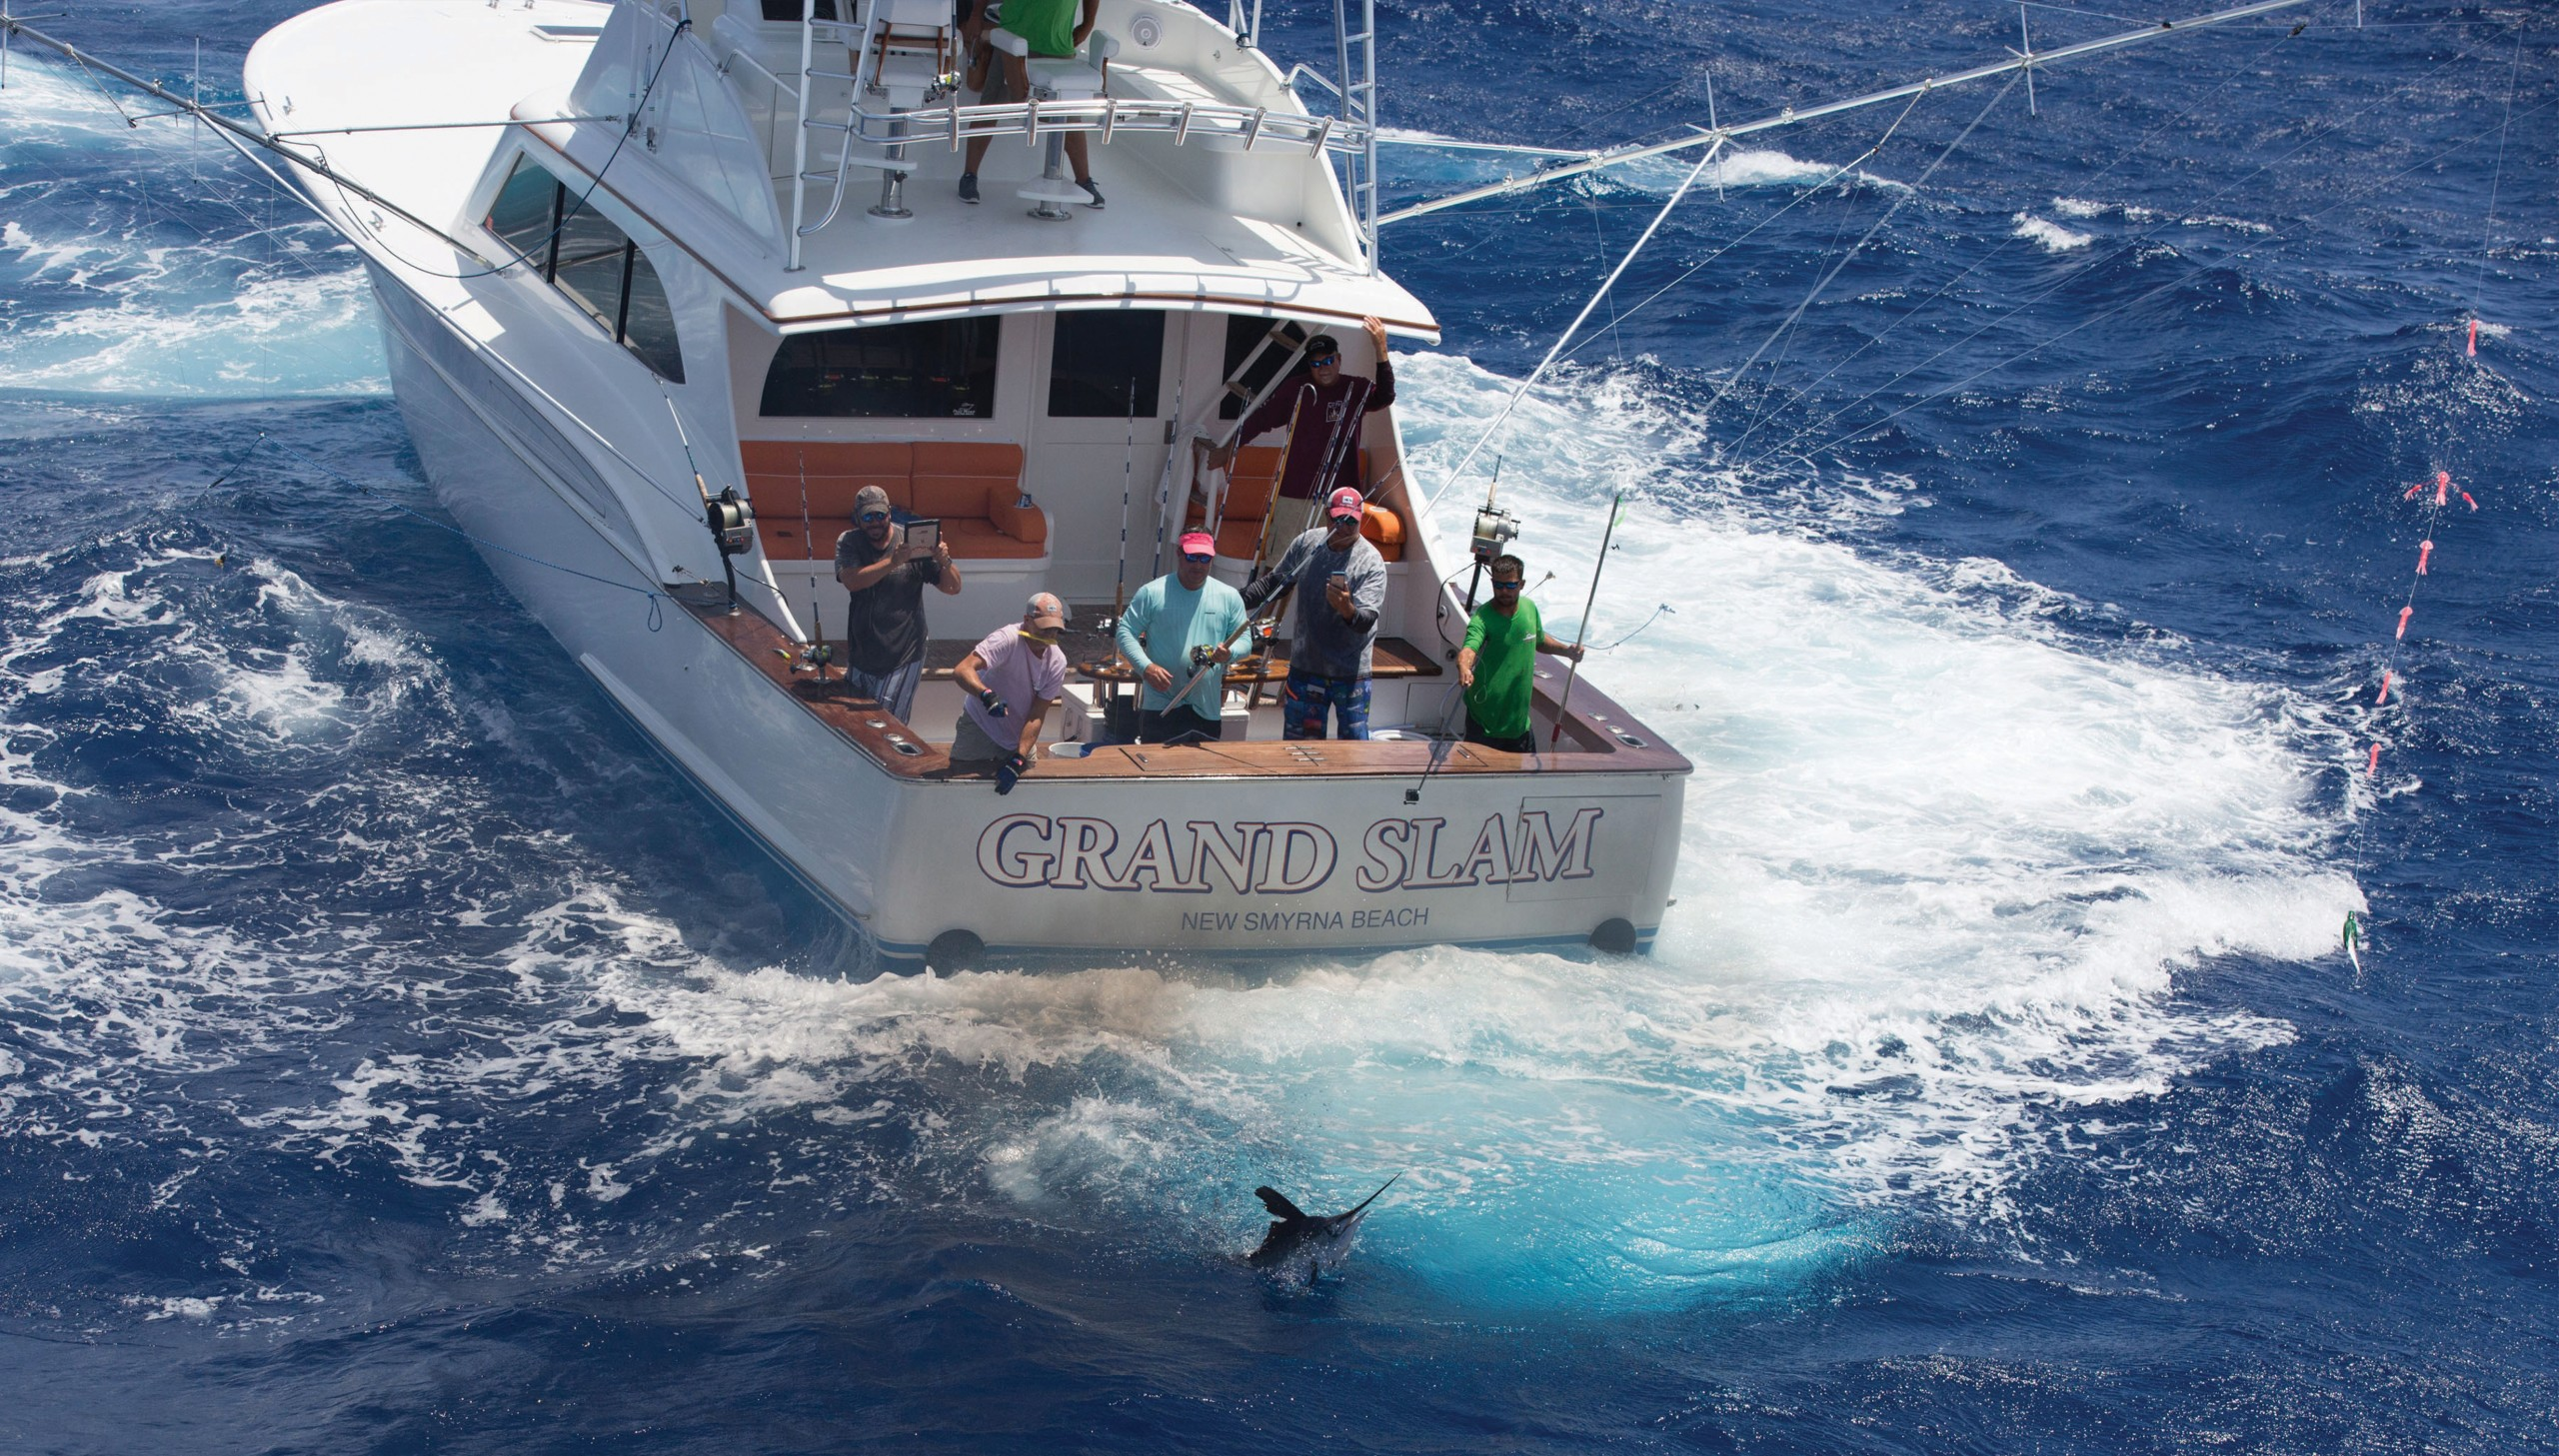 a boat backing down with a blue marlin jumping behind it